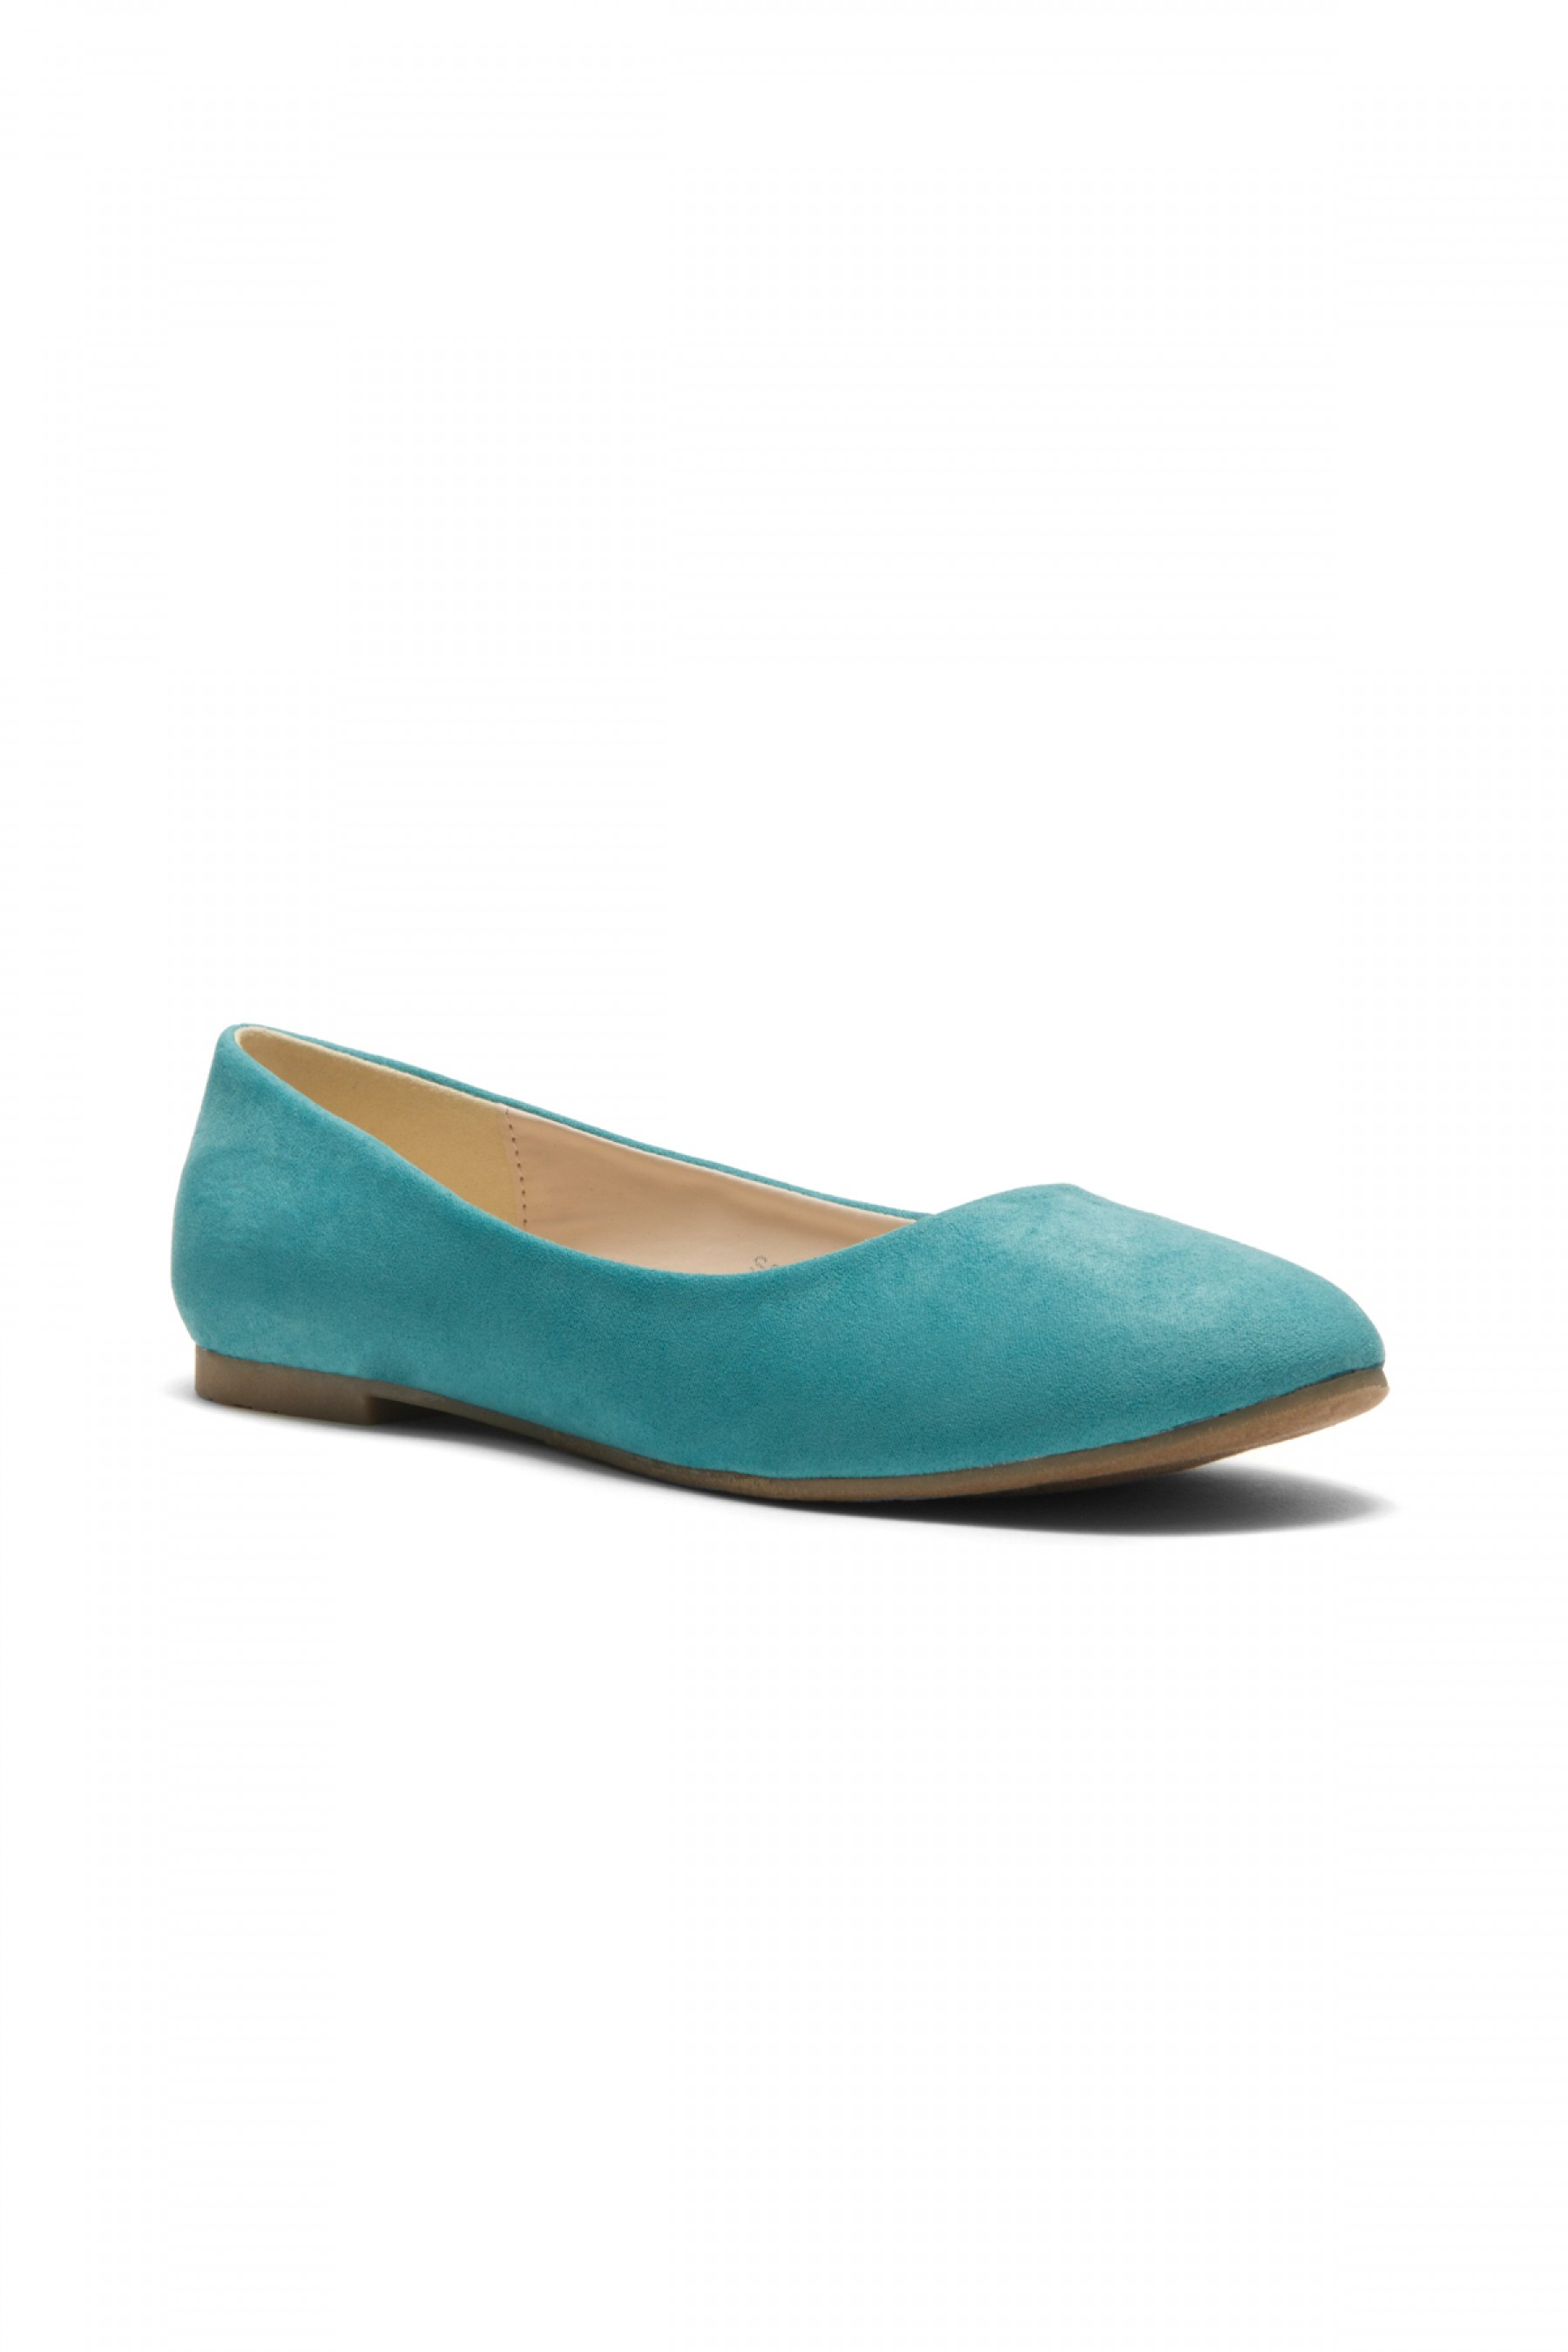 347a9479f13d09 HerStyle Women's Manmade Sammba Colorful Ballet Flat (Teal)